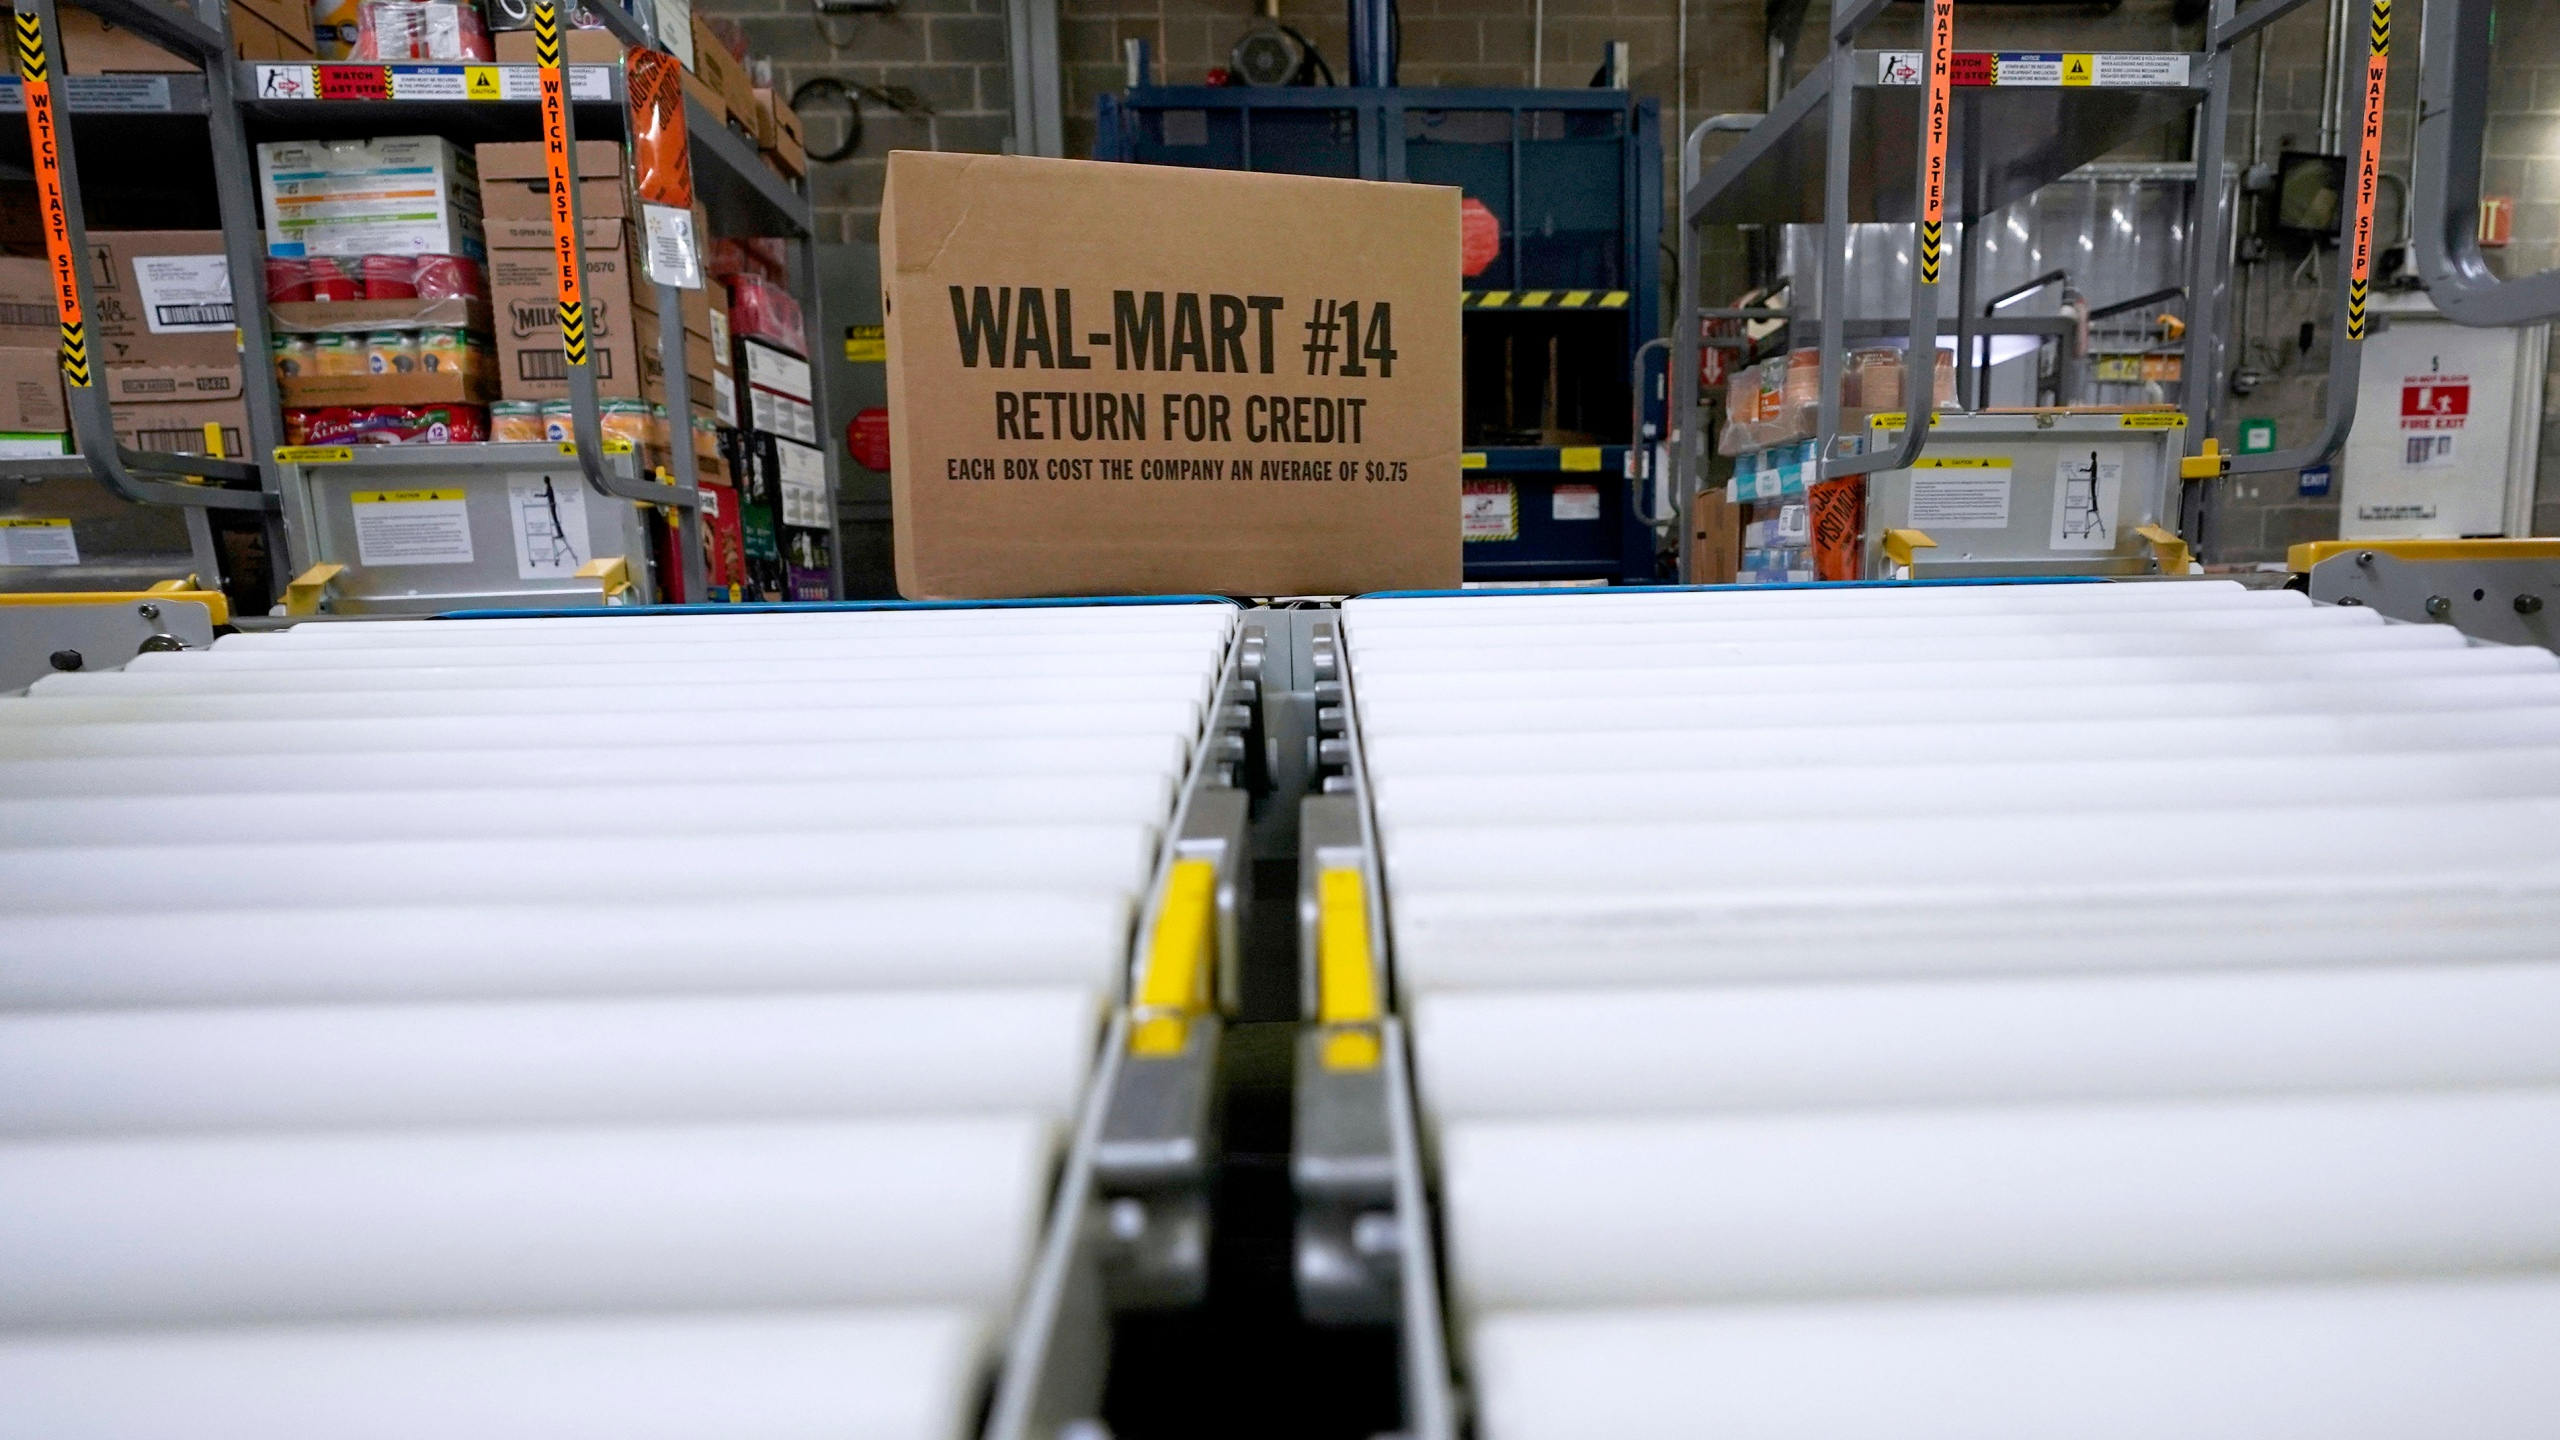 Walmart_Grocery_Delivery_31817-159532.jpg49338853